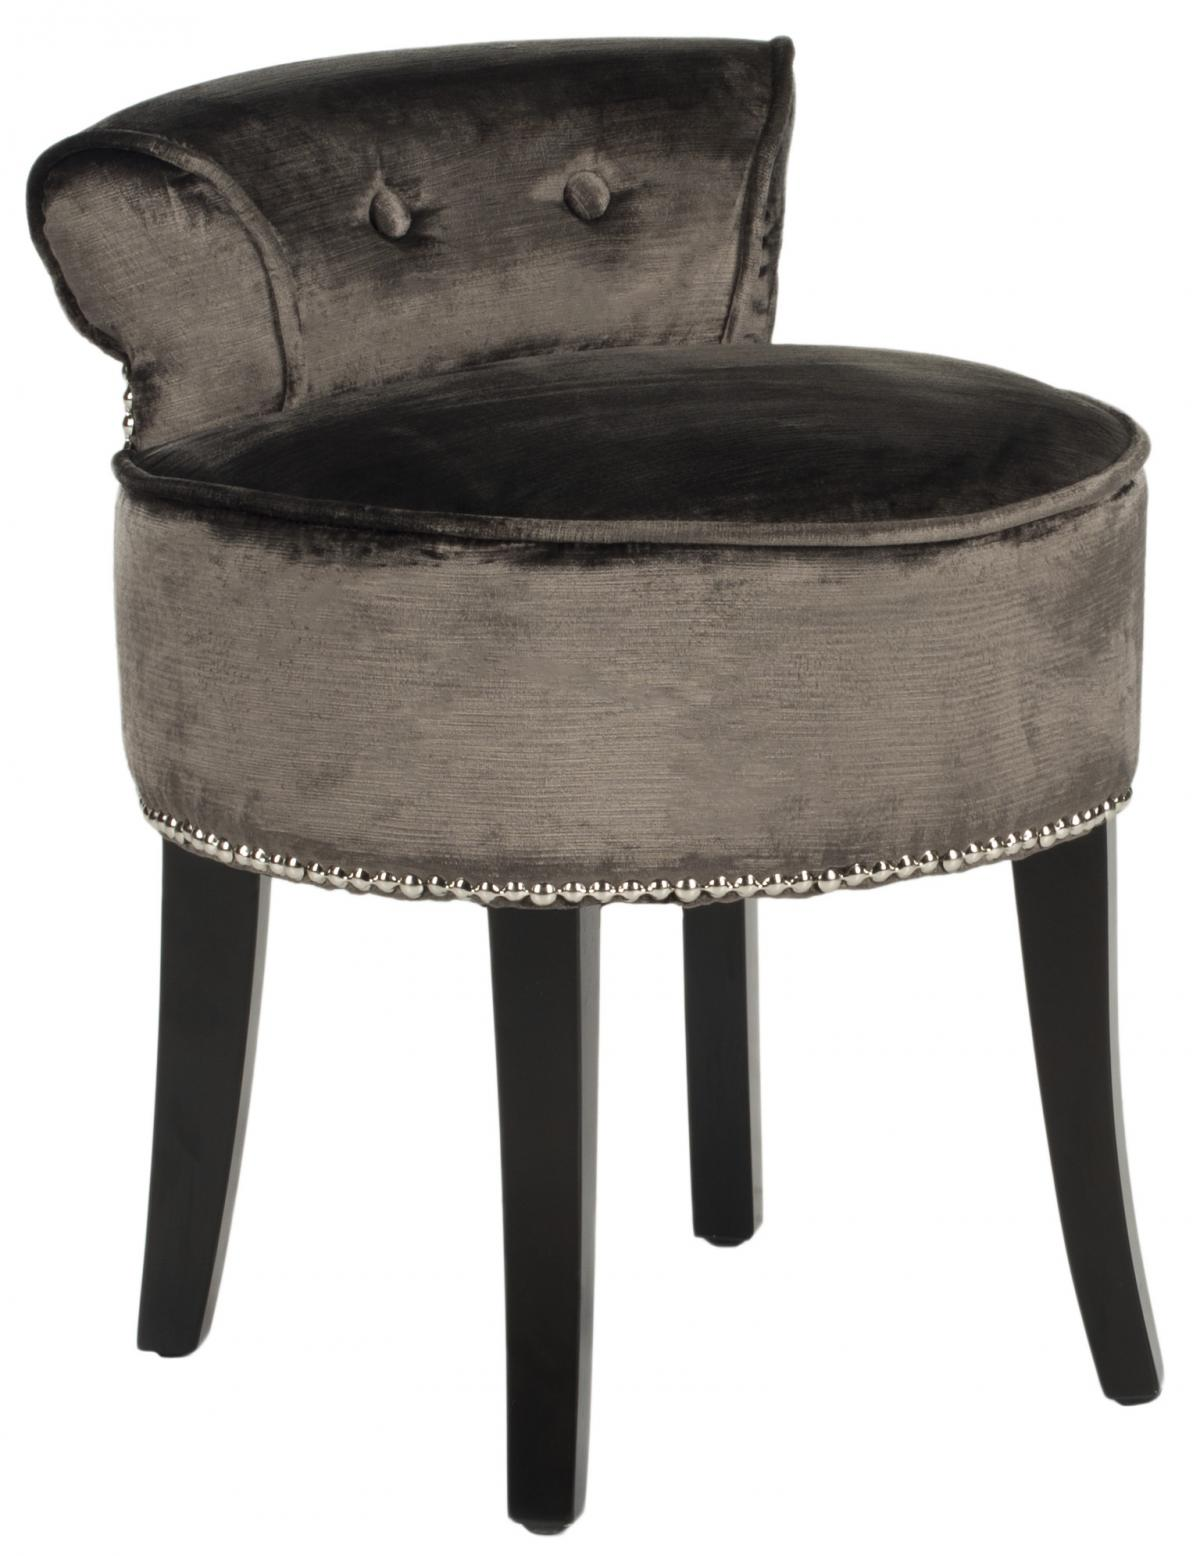 Safavieh - MCR4546H GEORGIA VANITY CHAIR - PEWTER